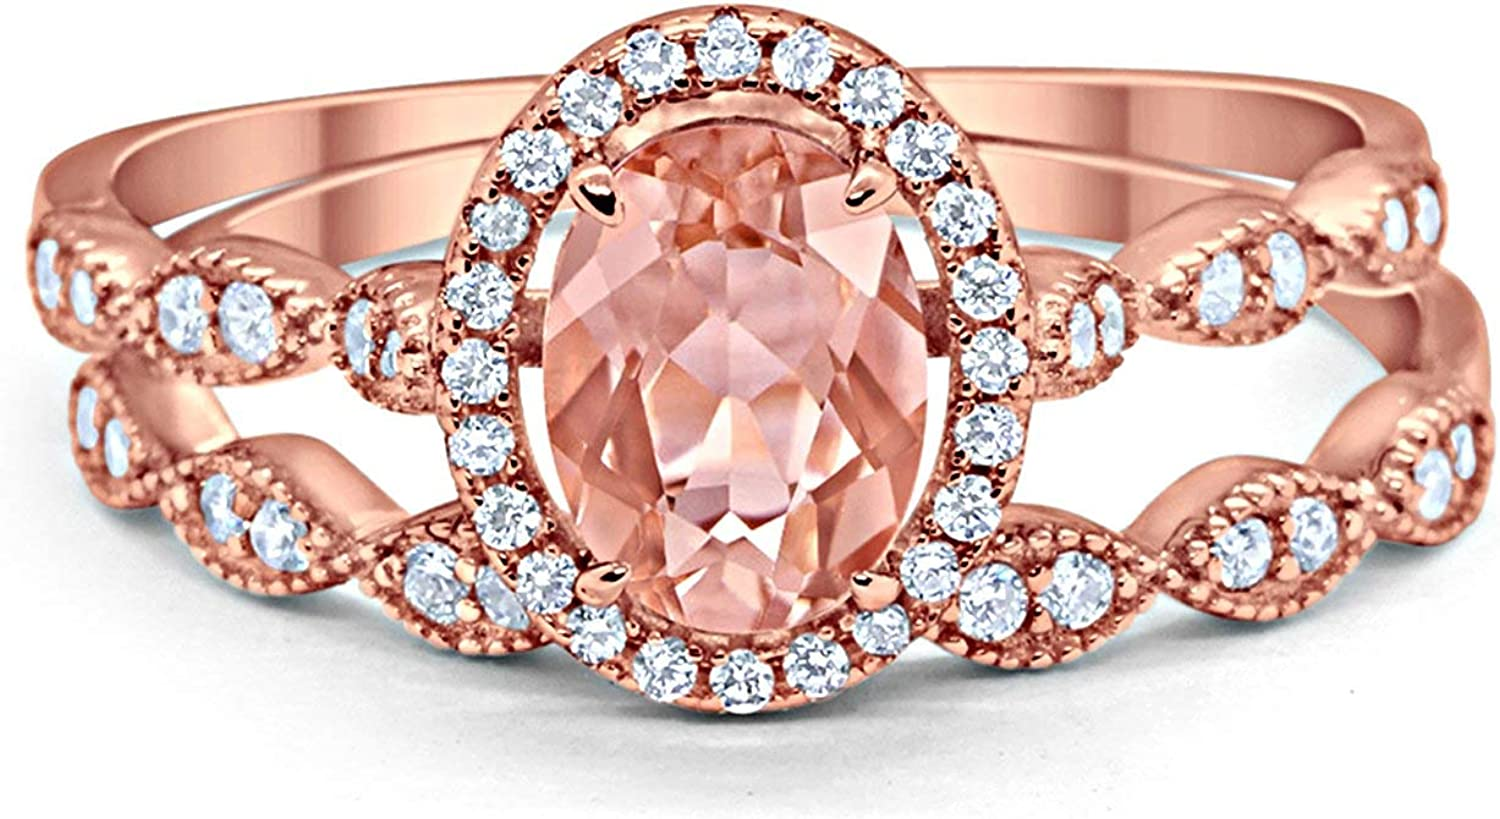 Blue Apple Co. Halo Oval Bridal Set Art Deco Oval Round Rose Tone Simulated Morganite Cubic Zirconia Solid 925 Sterling Silver Size-5 713o2BWqr-JL